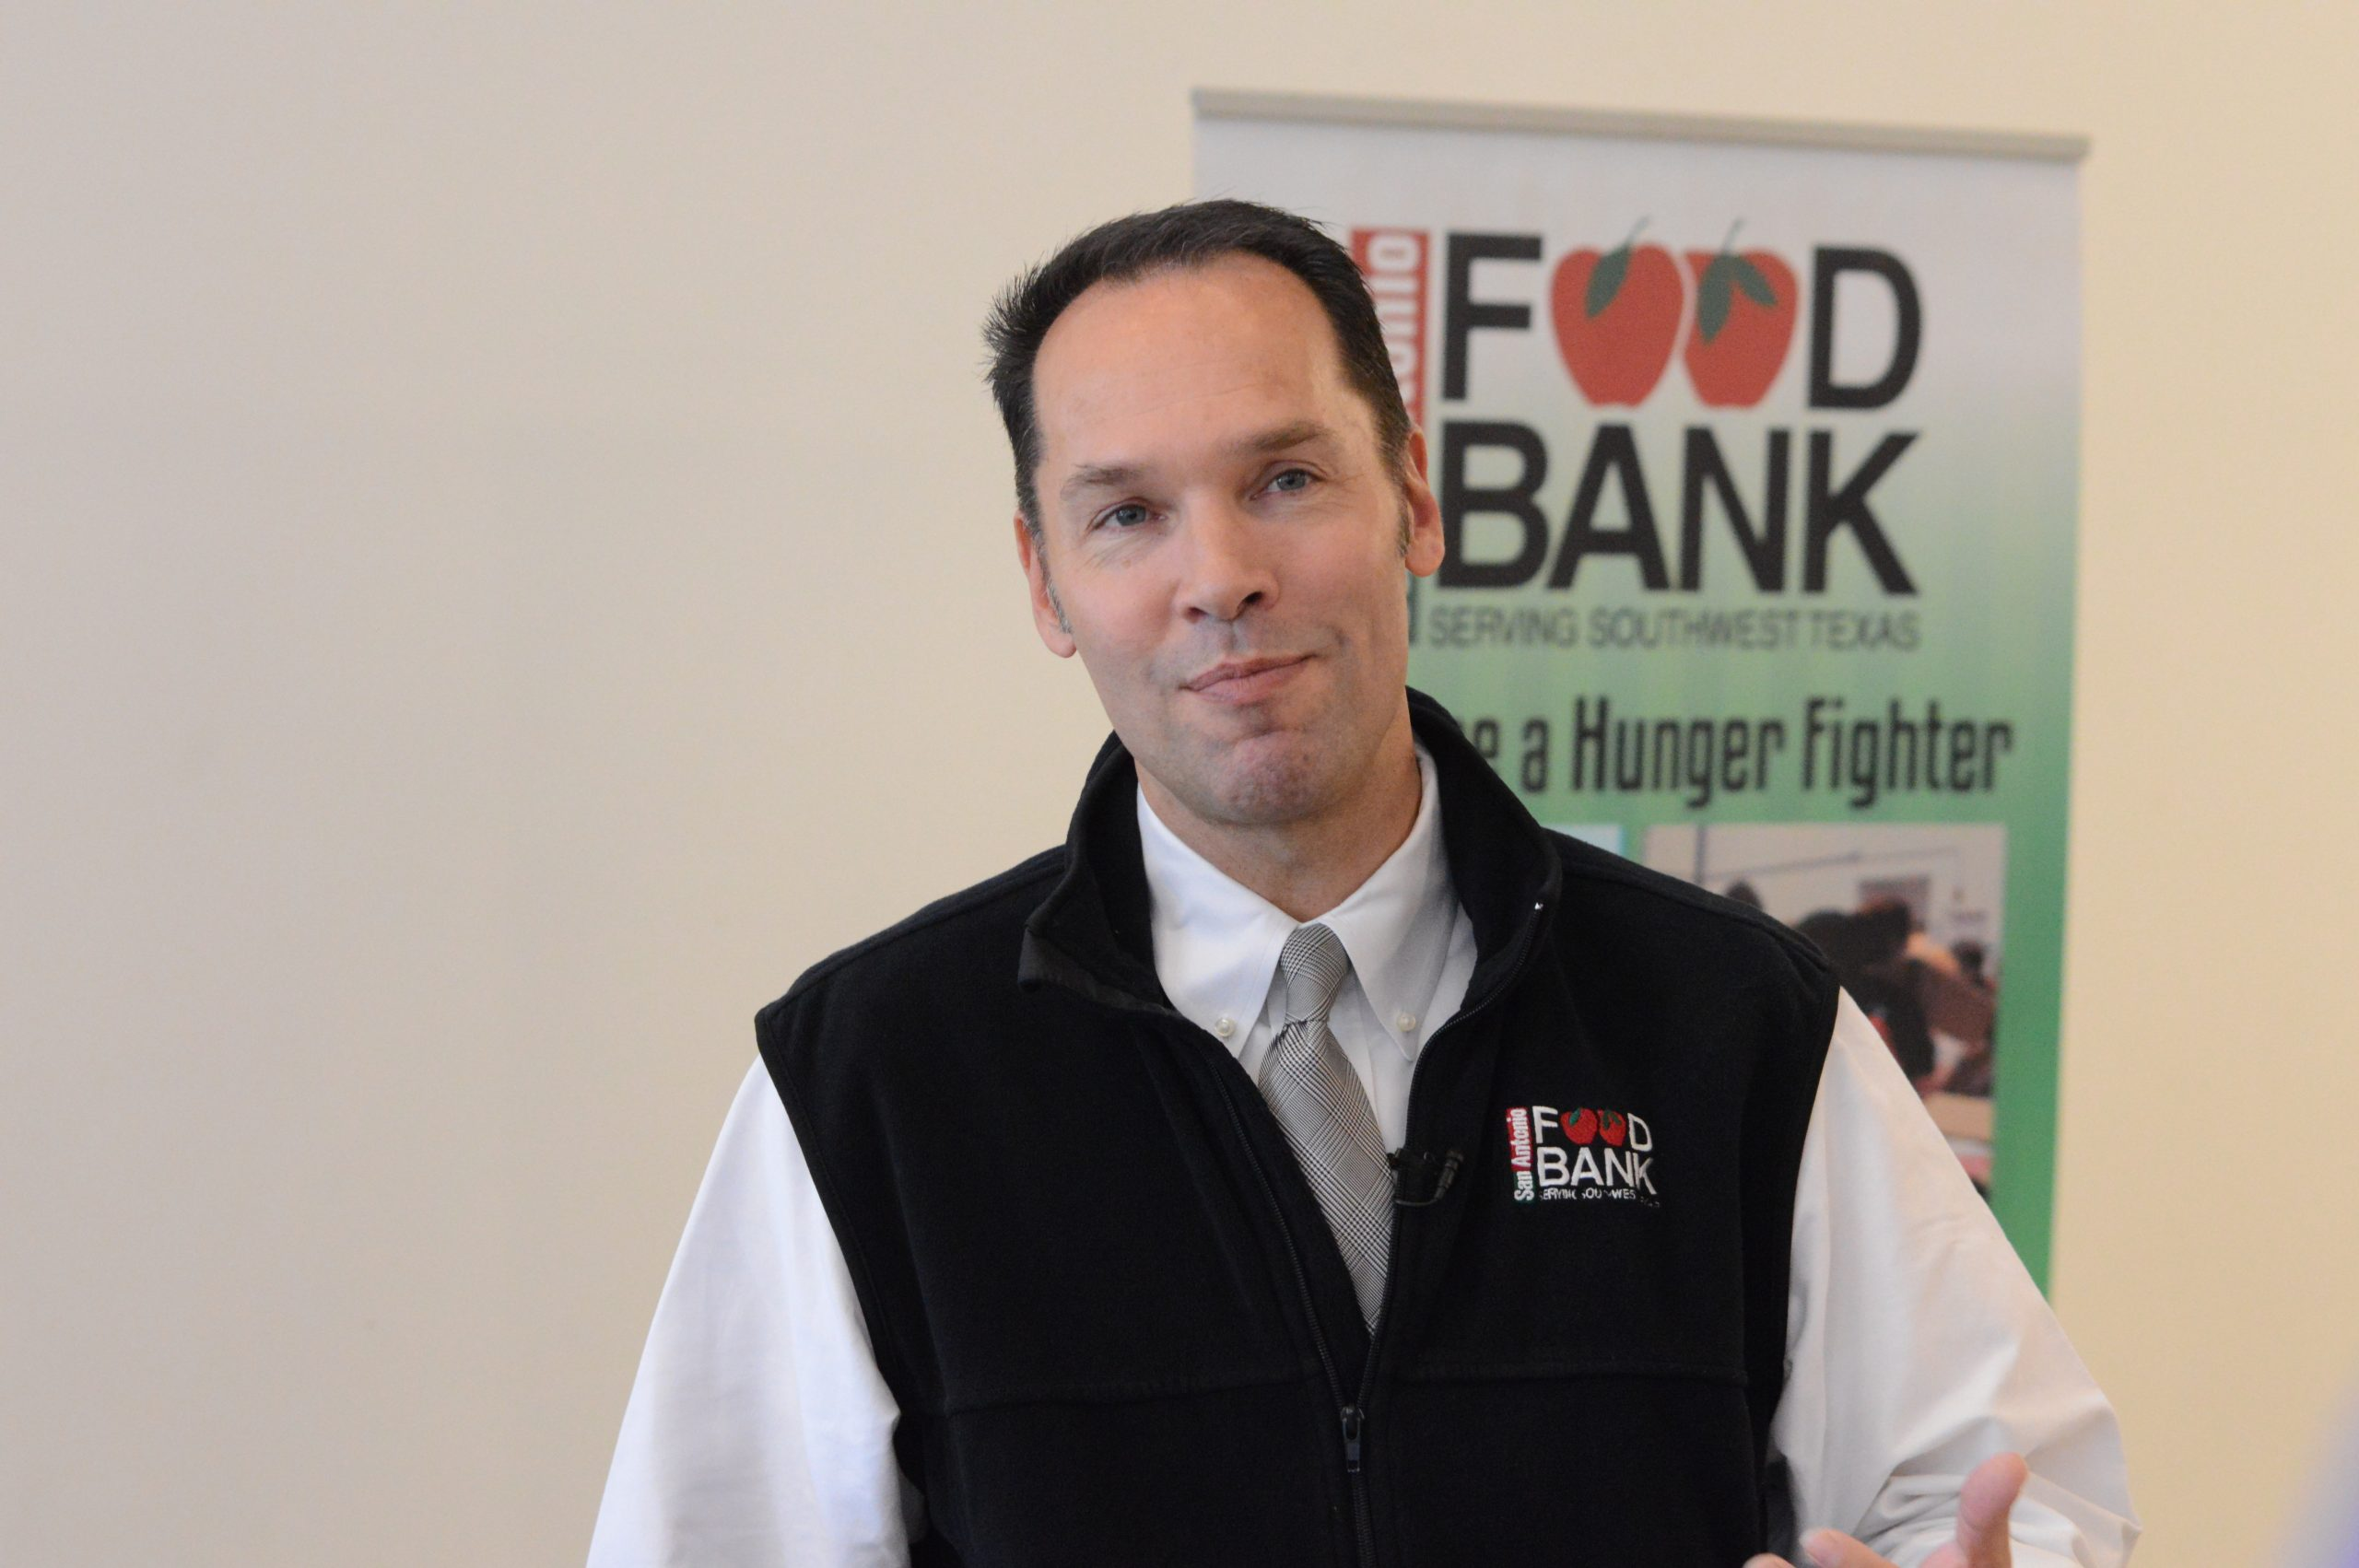 Eric Cooper, president and CEO for the San Antonio Food Bank, asks the community to help donate an additional 9,000 turkeys needed for needy families during Thanksgiving. Photo by Lea Thompson.